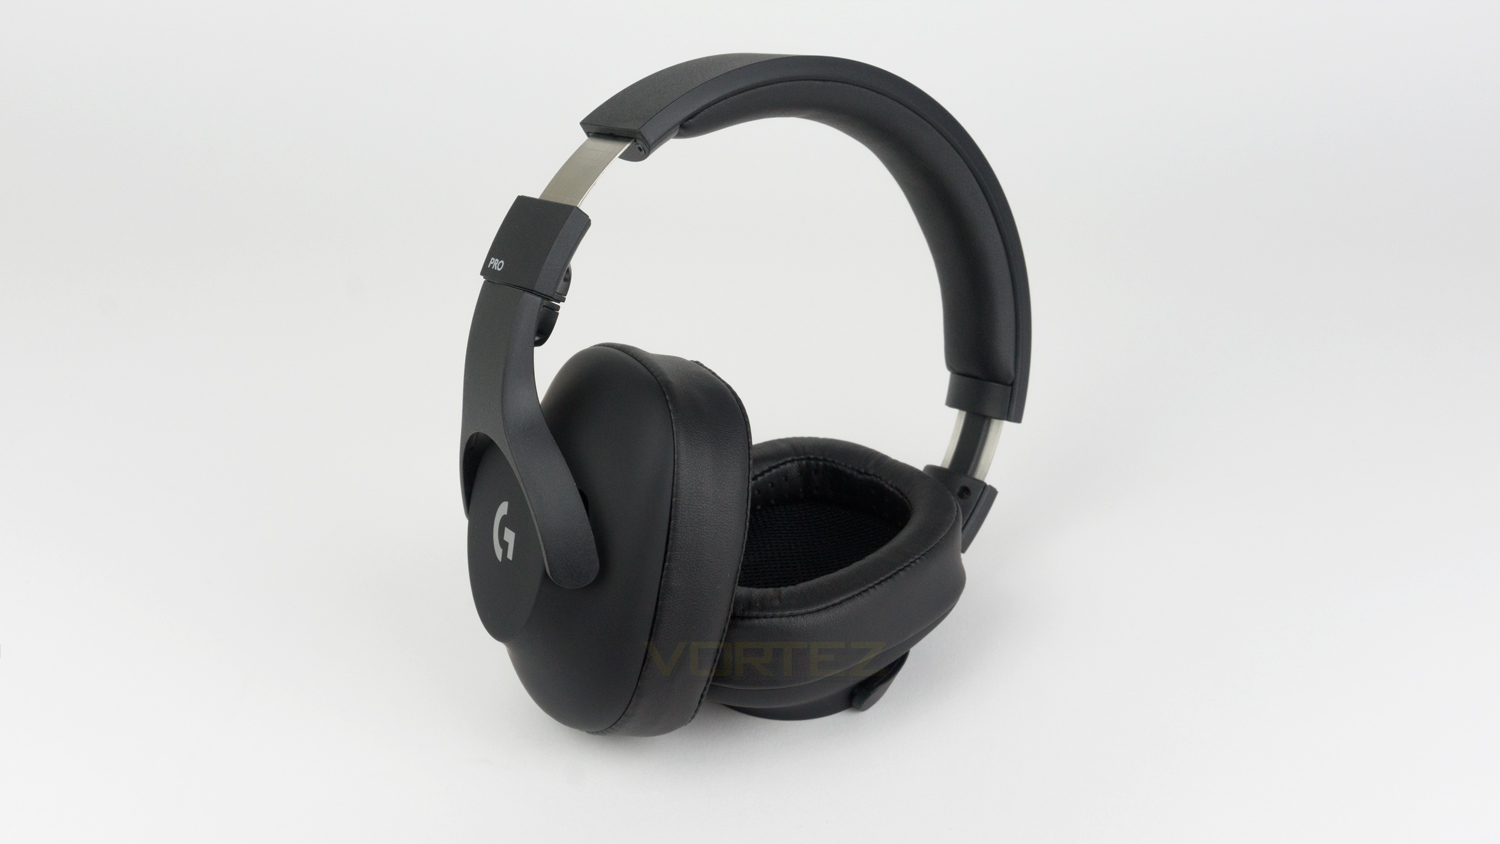 Logitech G PRO Gaming Headset Review - Introduction